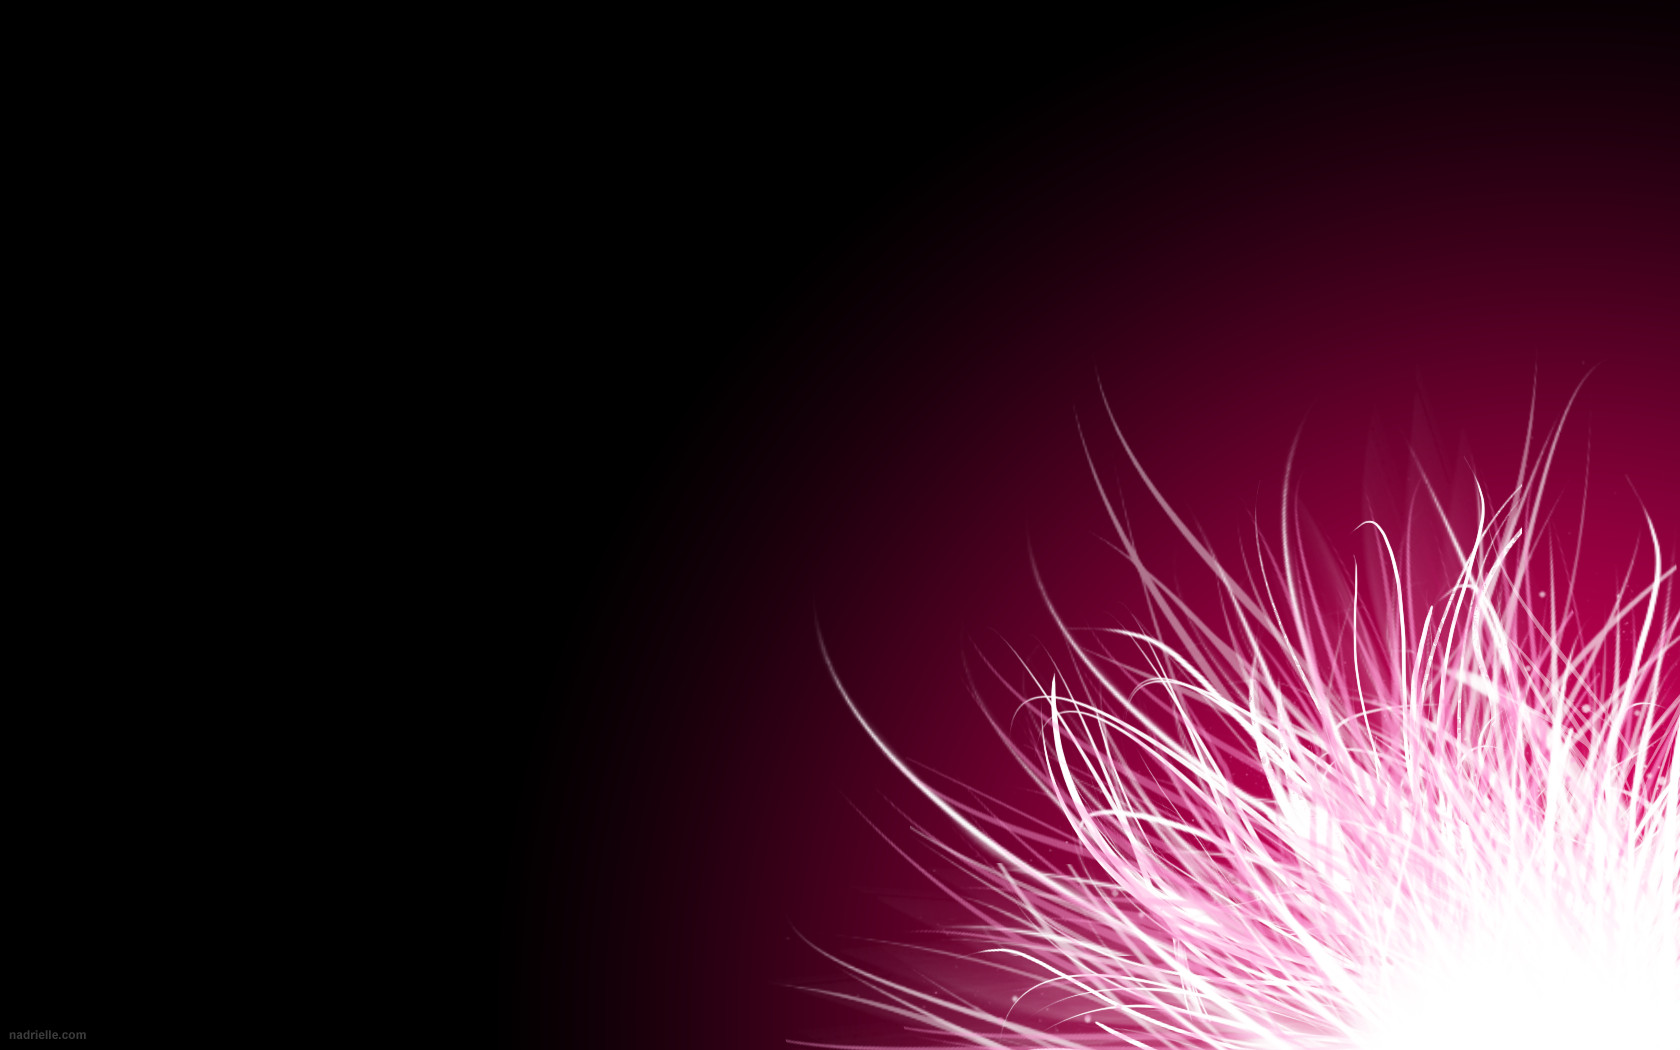 30 Stunning Pink Wallpaper Backgrounds 1680x1050